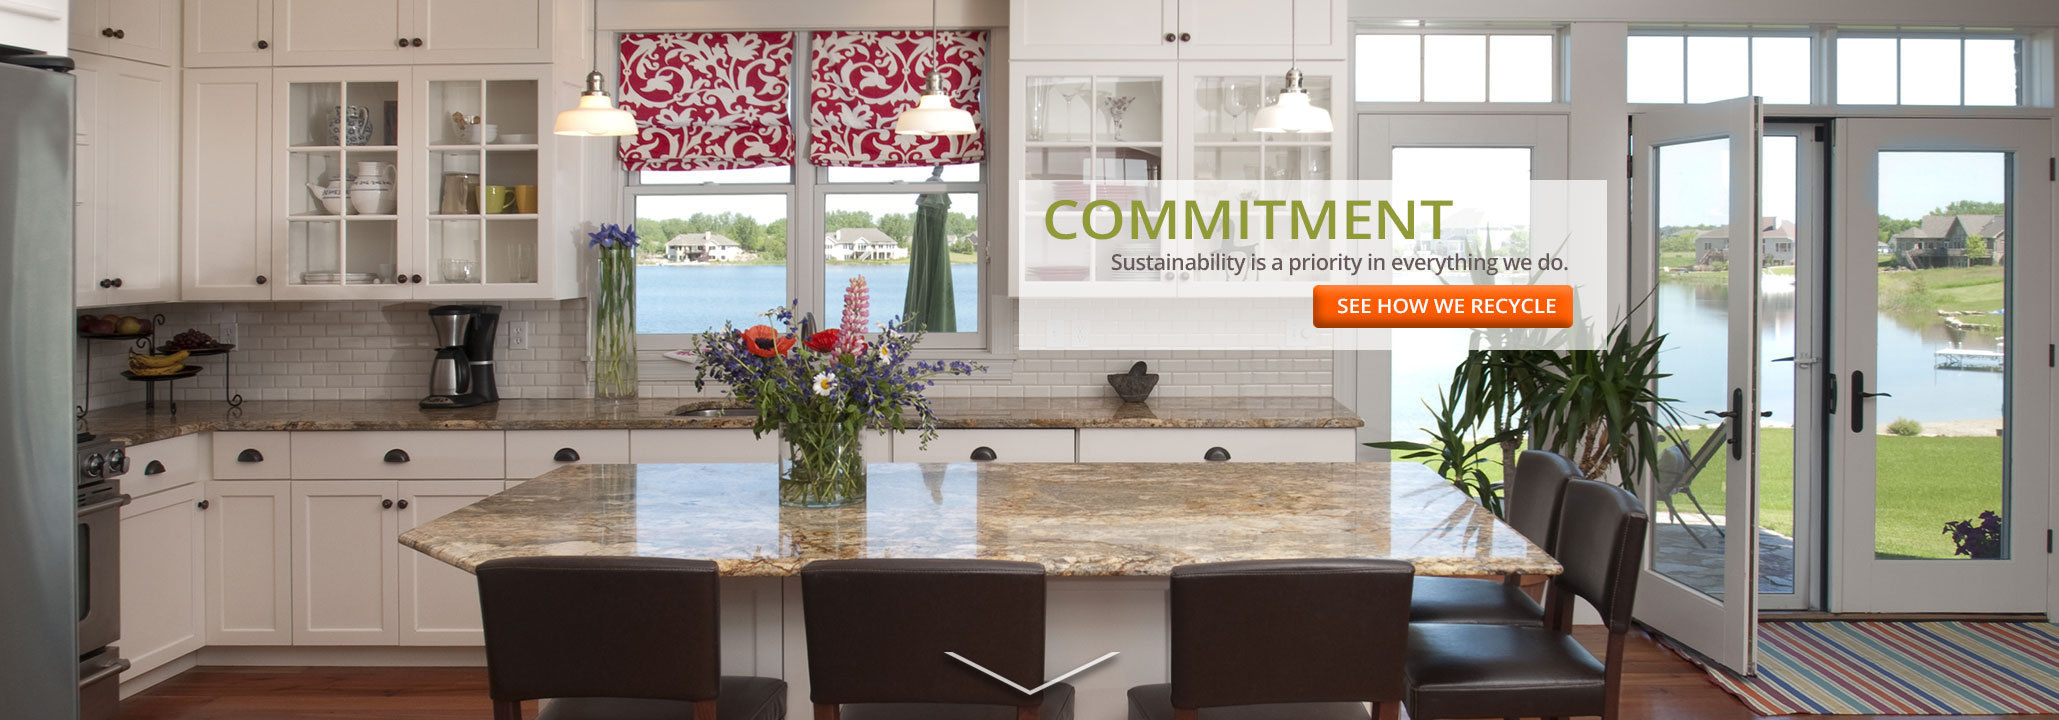 Woodmont Cabinetry commitment to sustainability